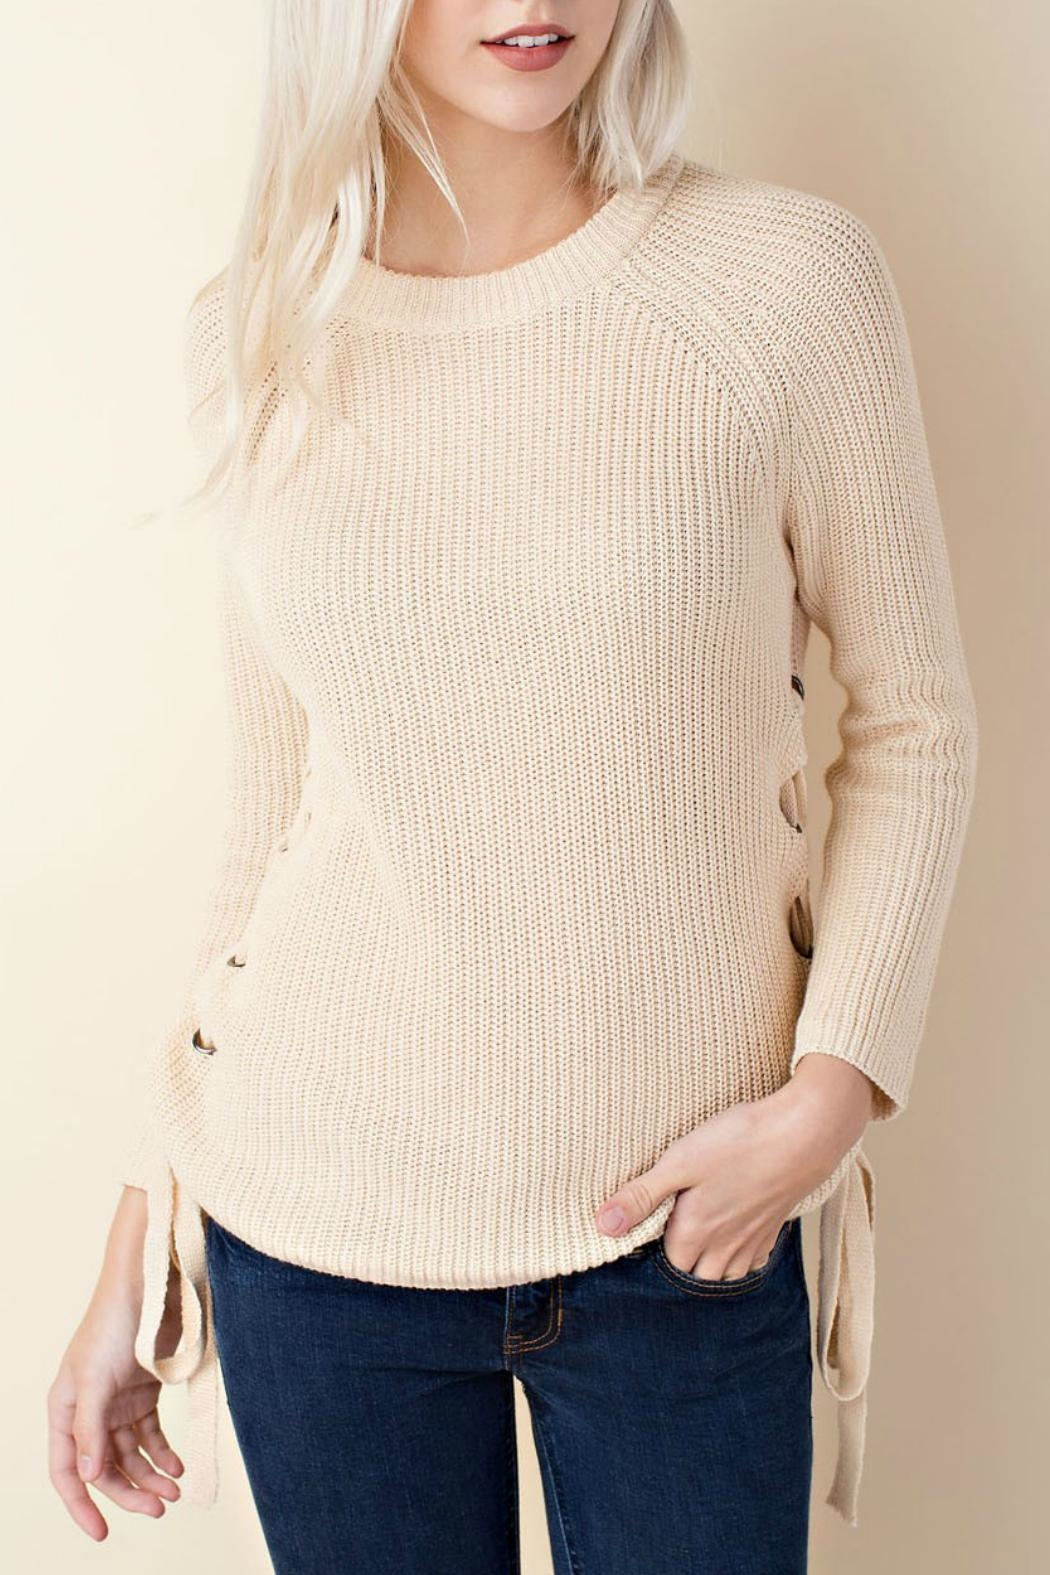 LLove USA Side Lace-Up Sweater - Main Image